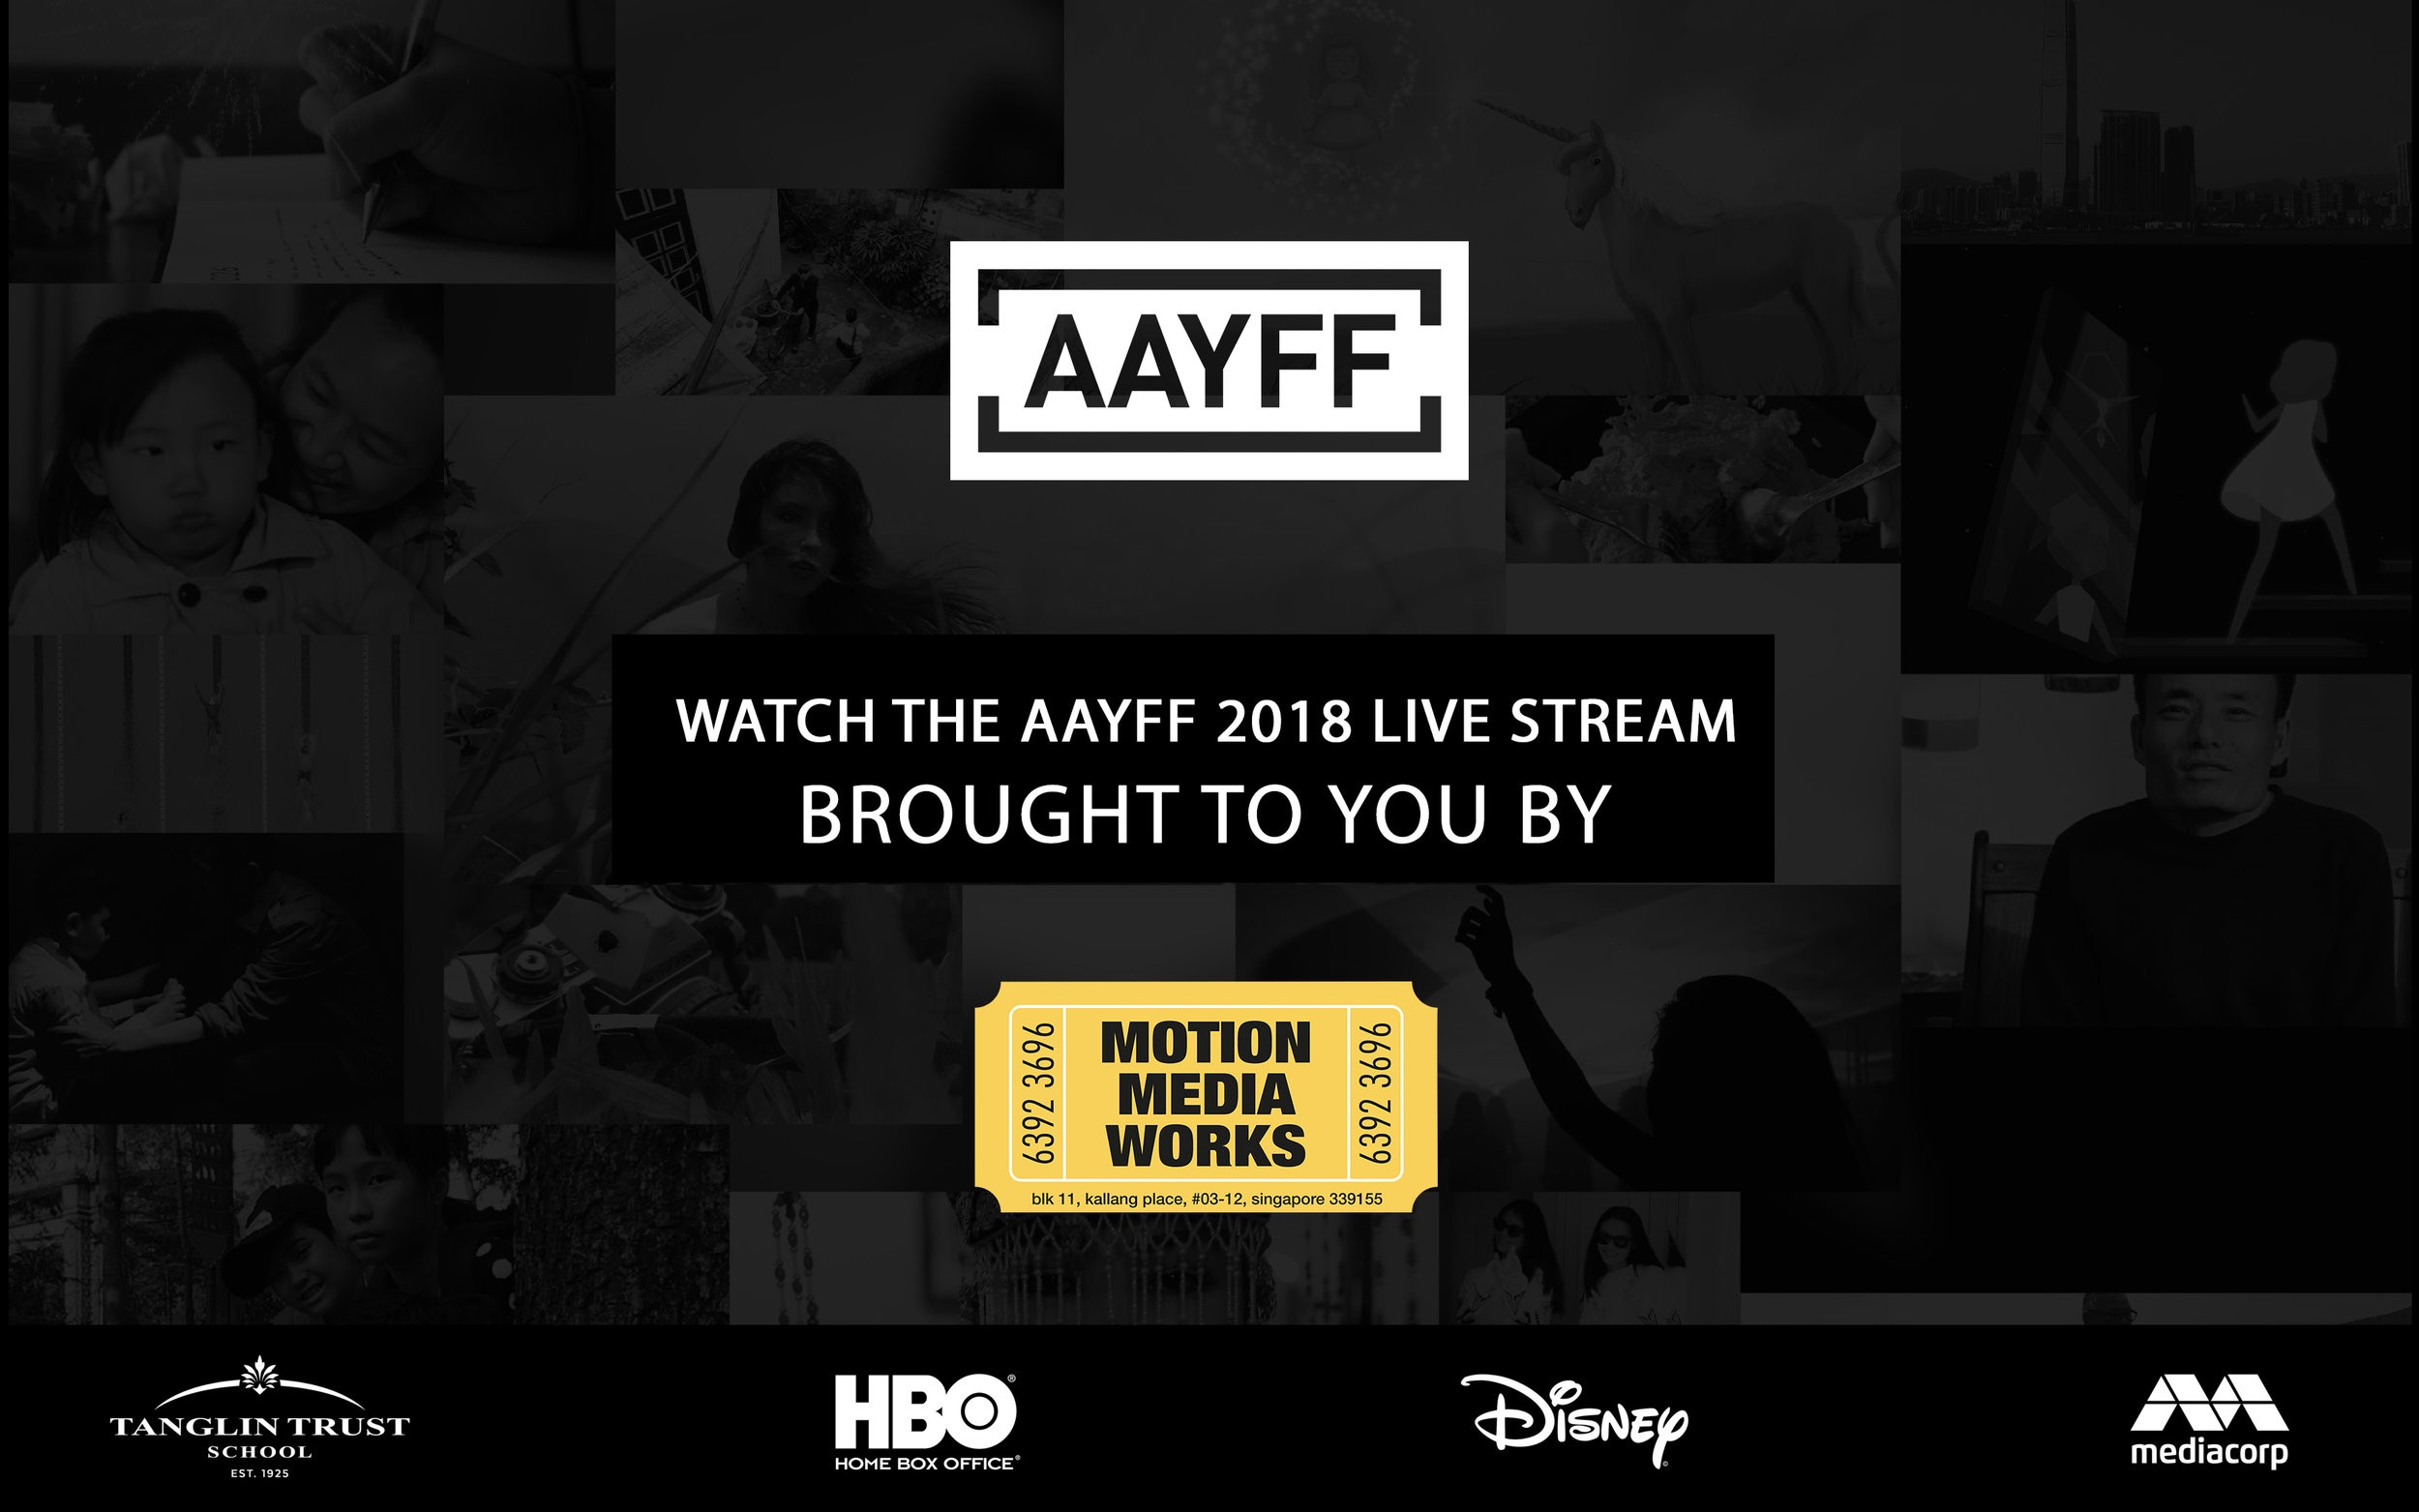 Click the image to access the live stream.